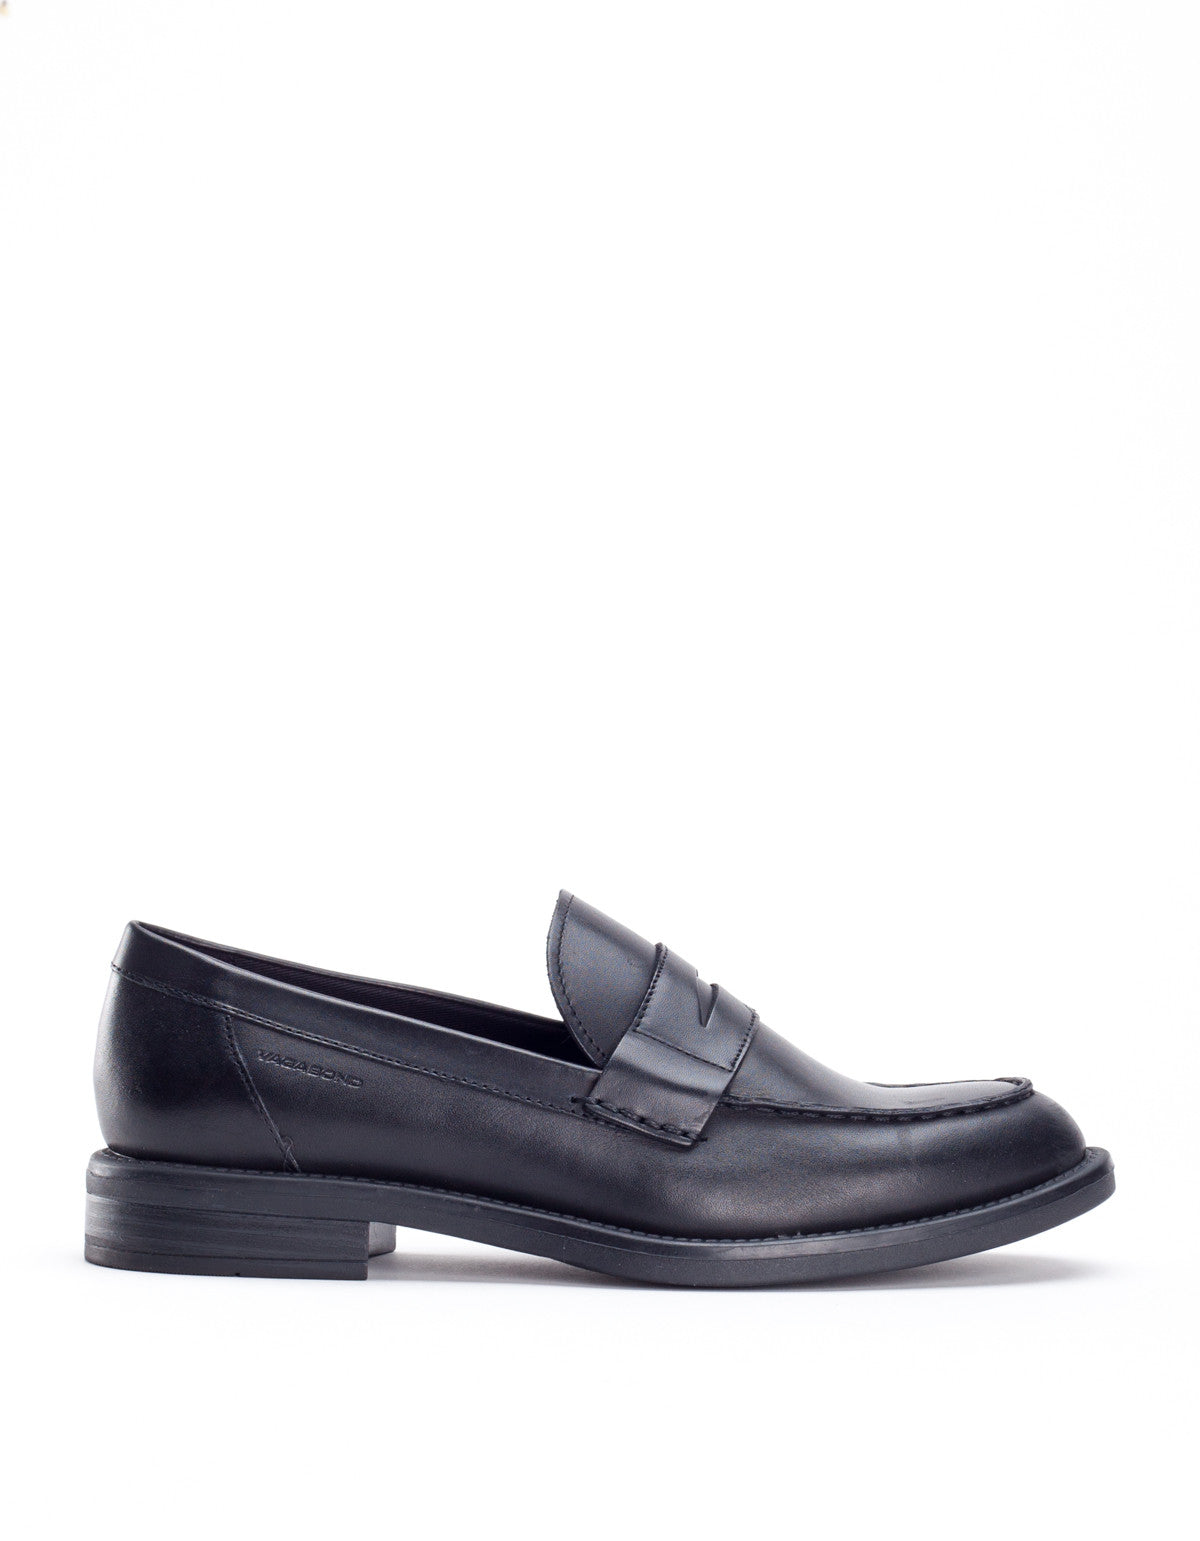 Vagabond Amina Loafer Black